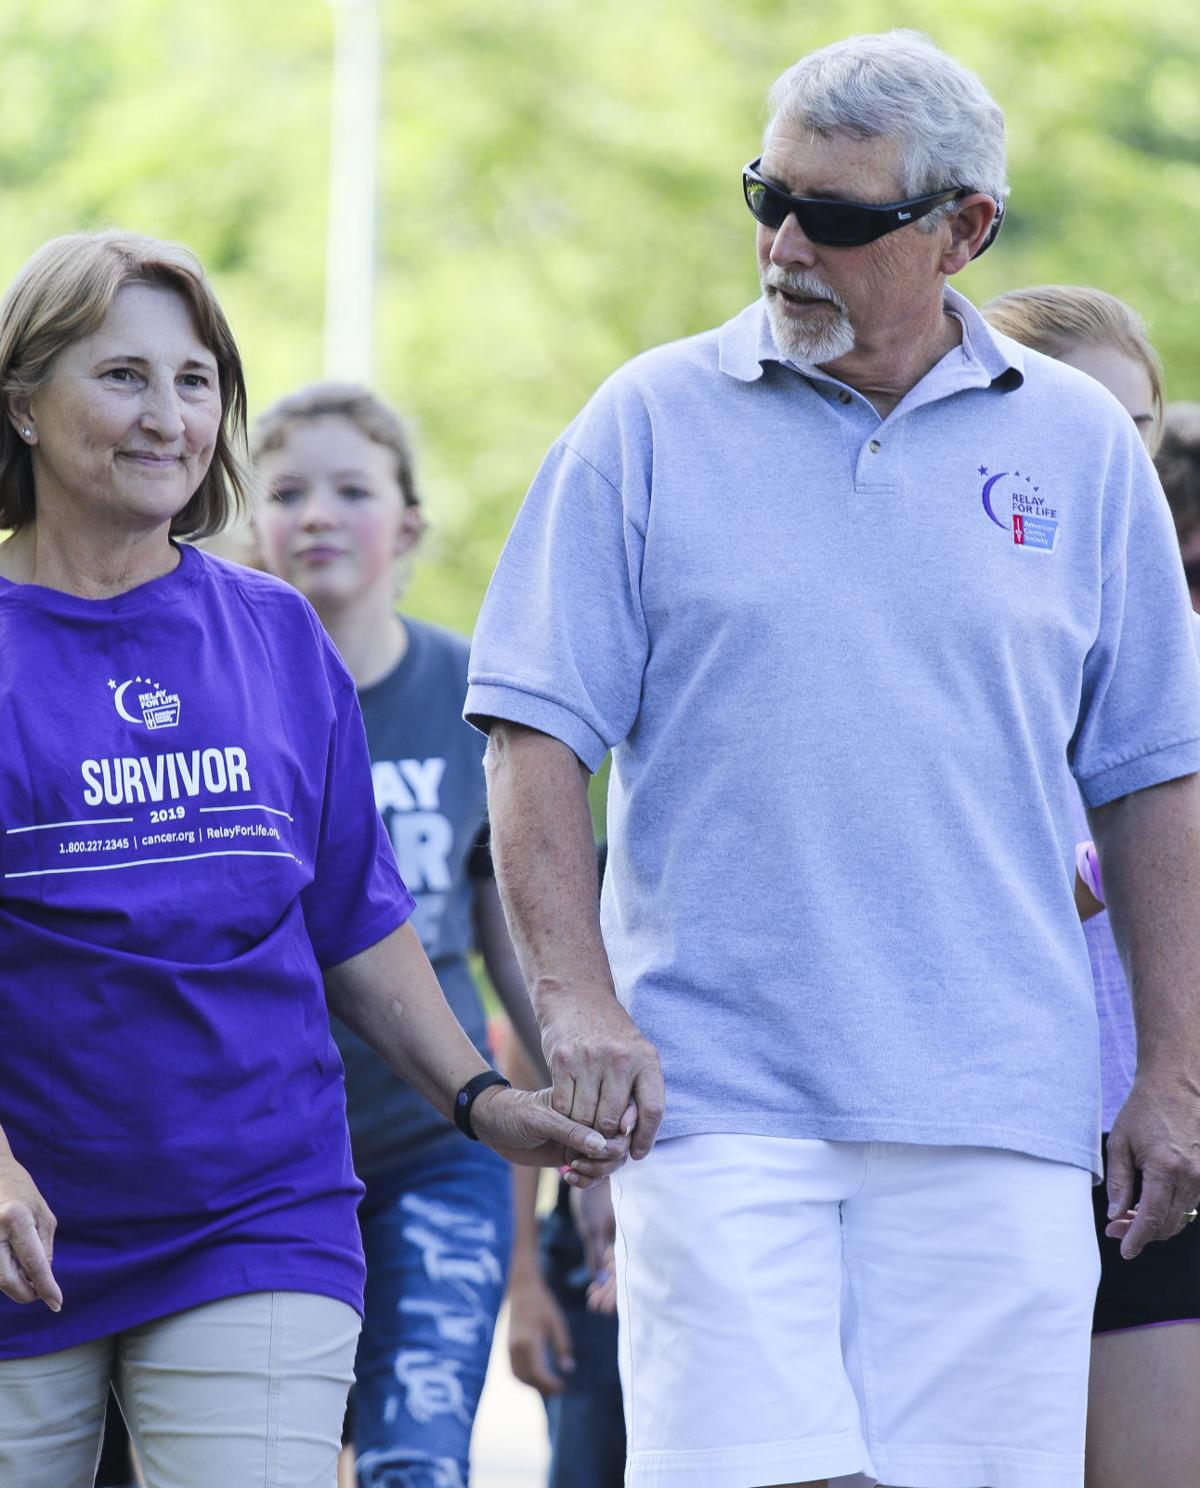 20190811-news-RelayForLife-ns-2.JPG